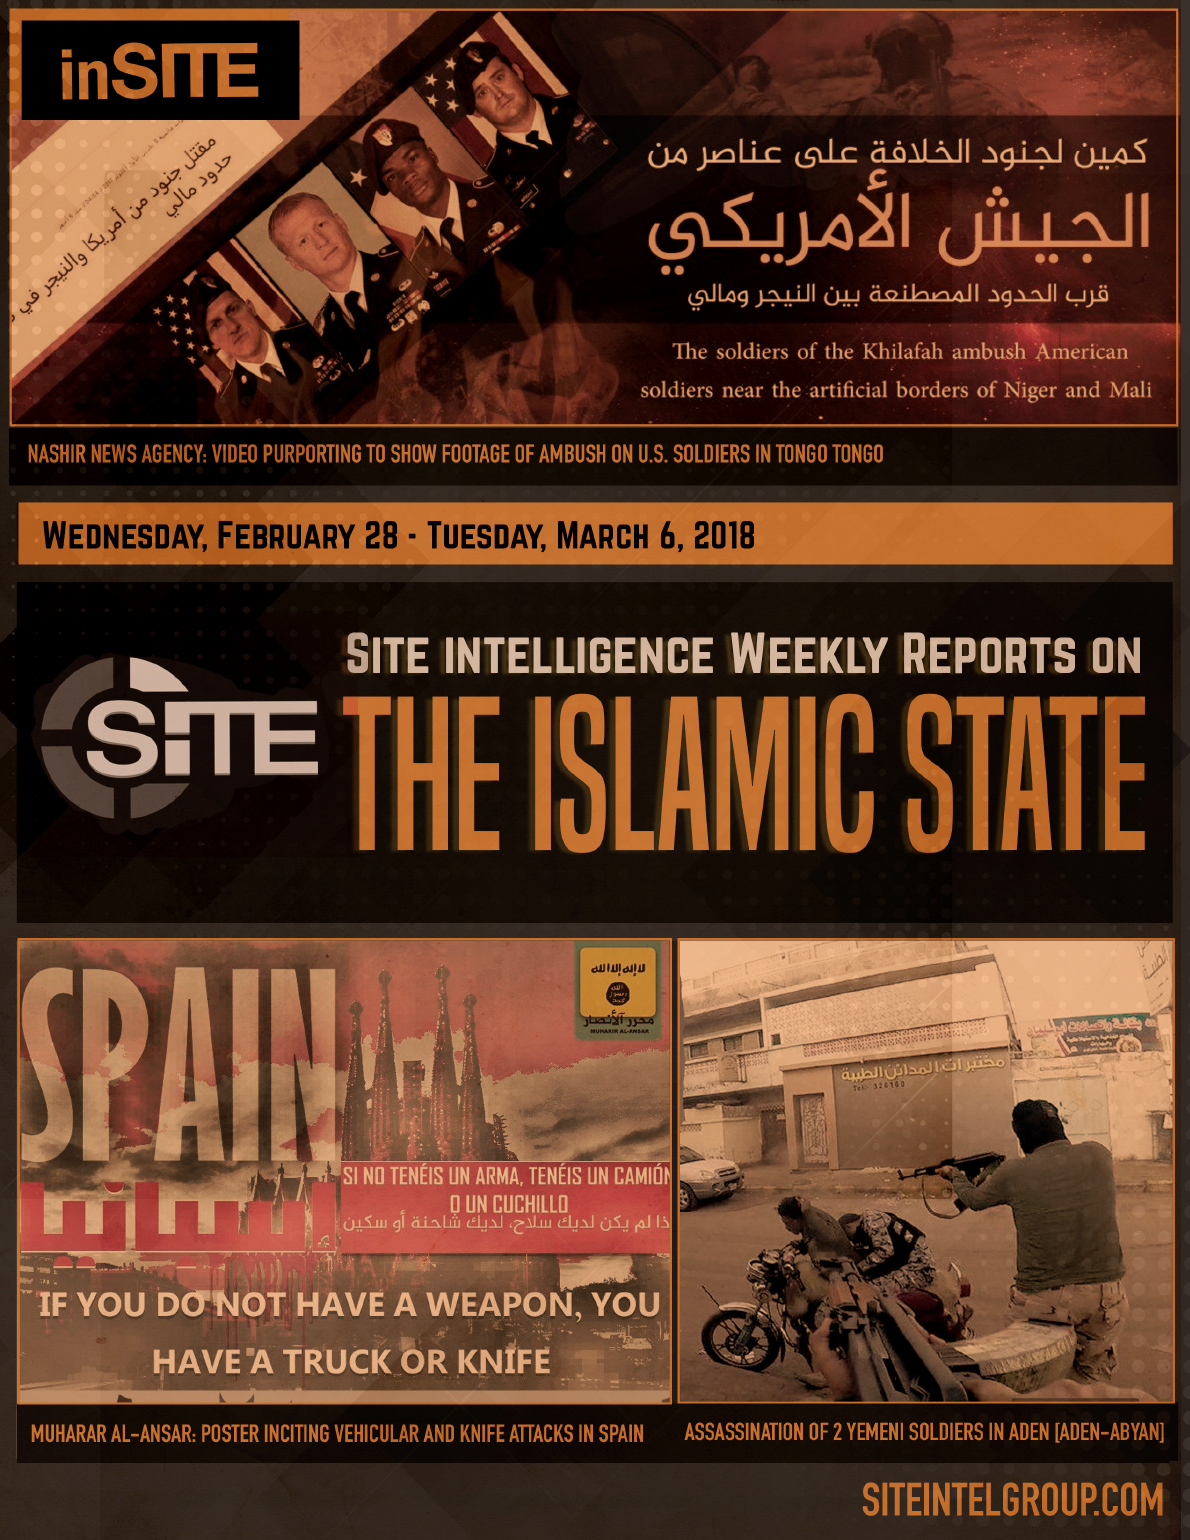 Weekly inSITE on the Islamic State for February 28-March 6, 2018